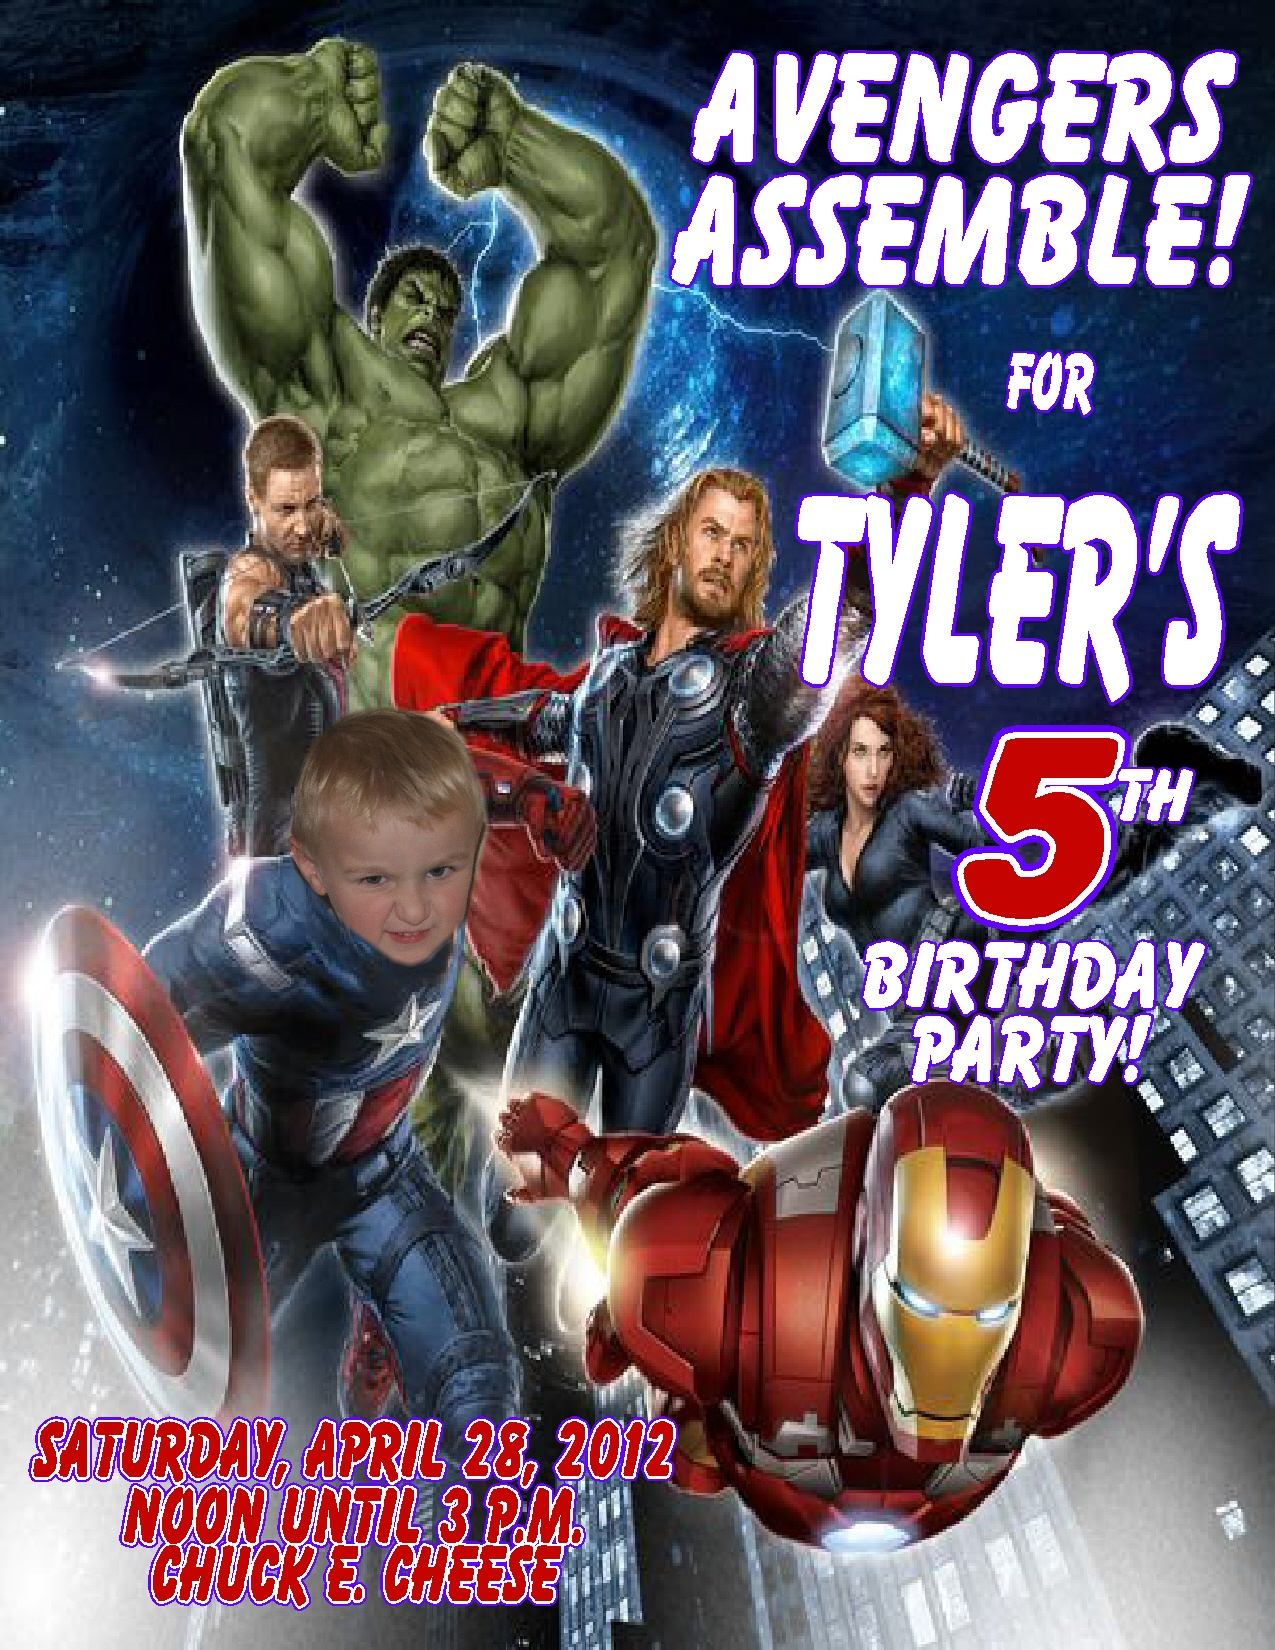 avengers themed birthday invitation ; 7a9427003ea4f5d0af35ddbee892f76a